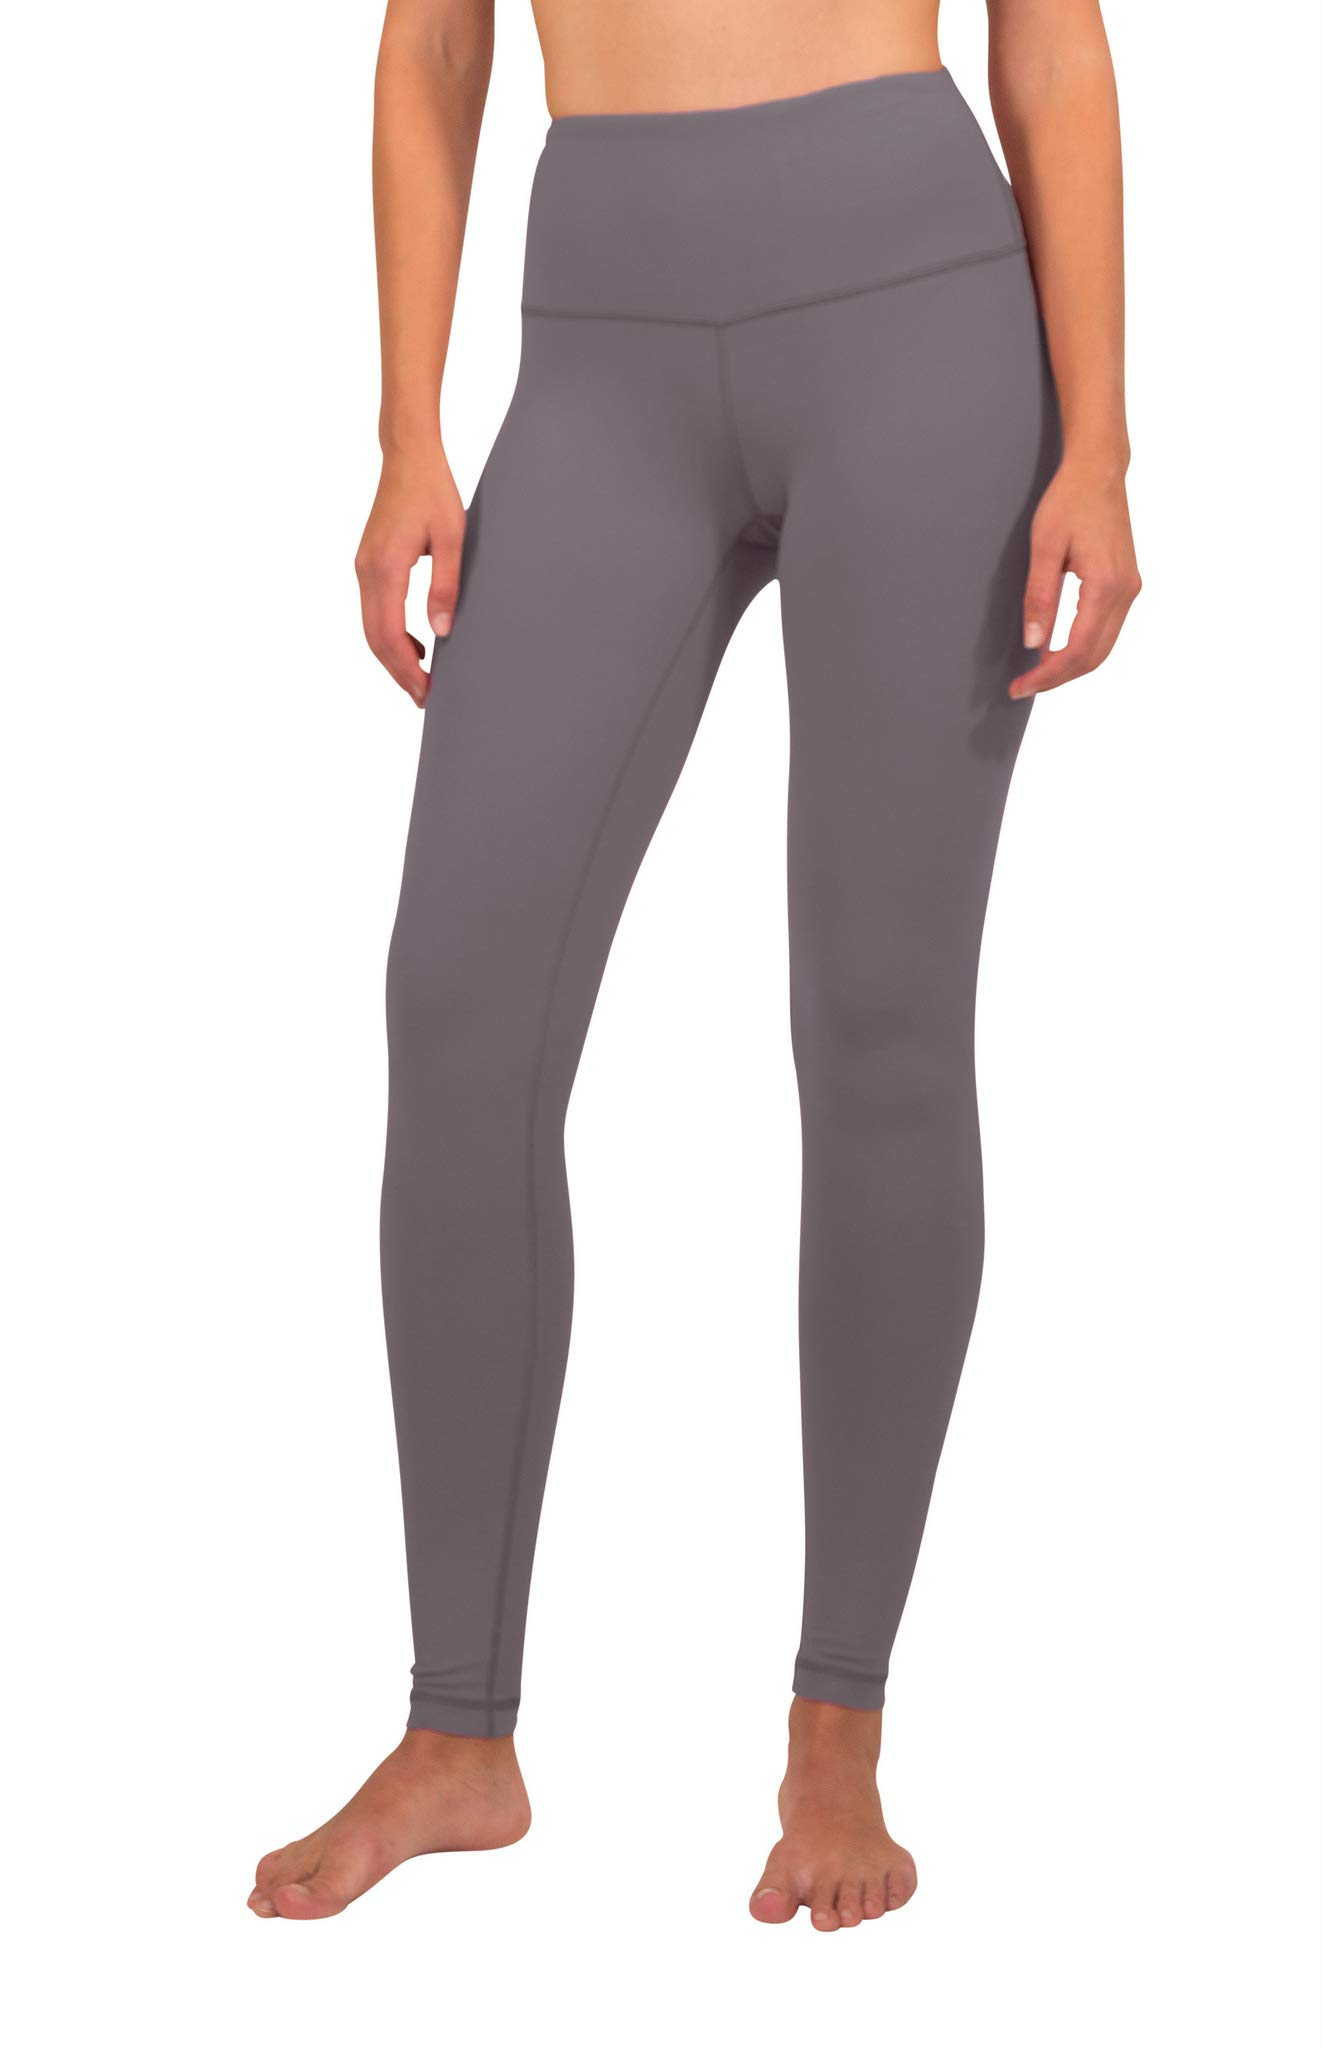 ff701158848e35 90 Degree By Reflex High Waist Squat Proof Interlink Leggings for Women  product image